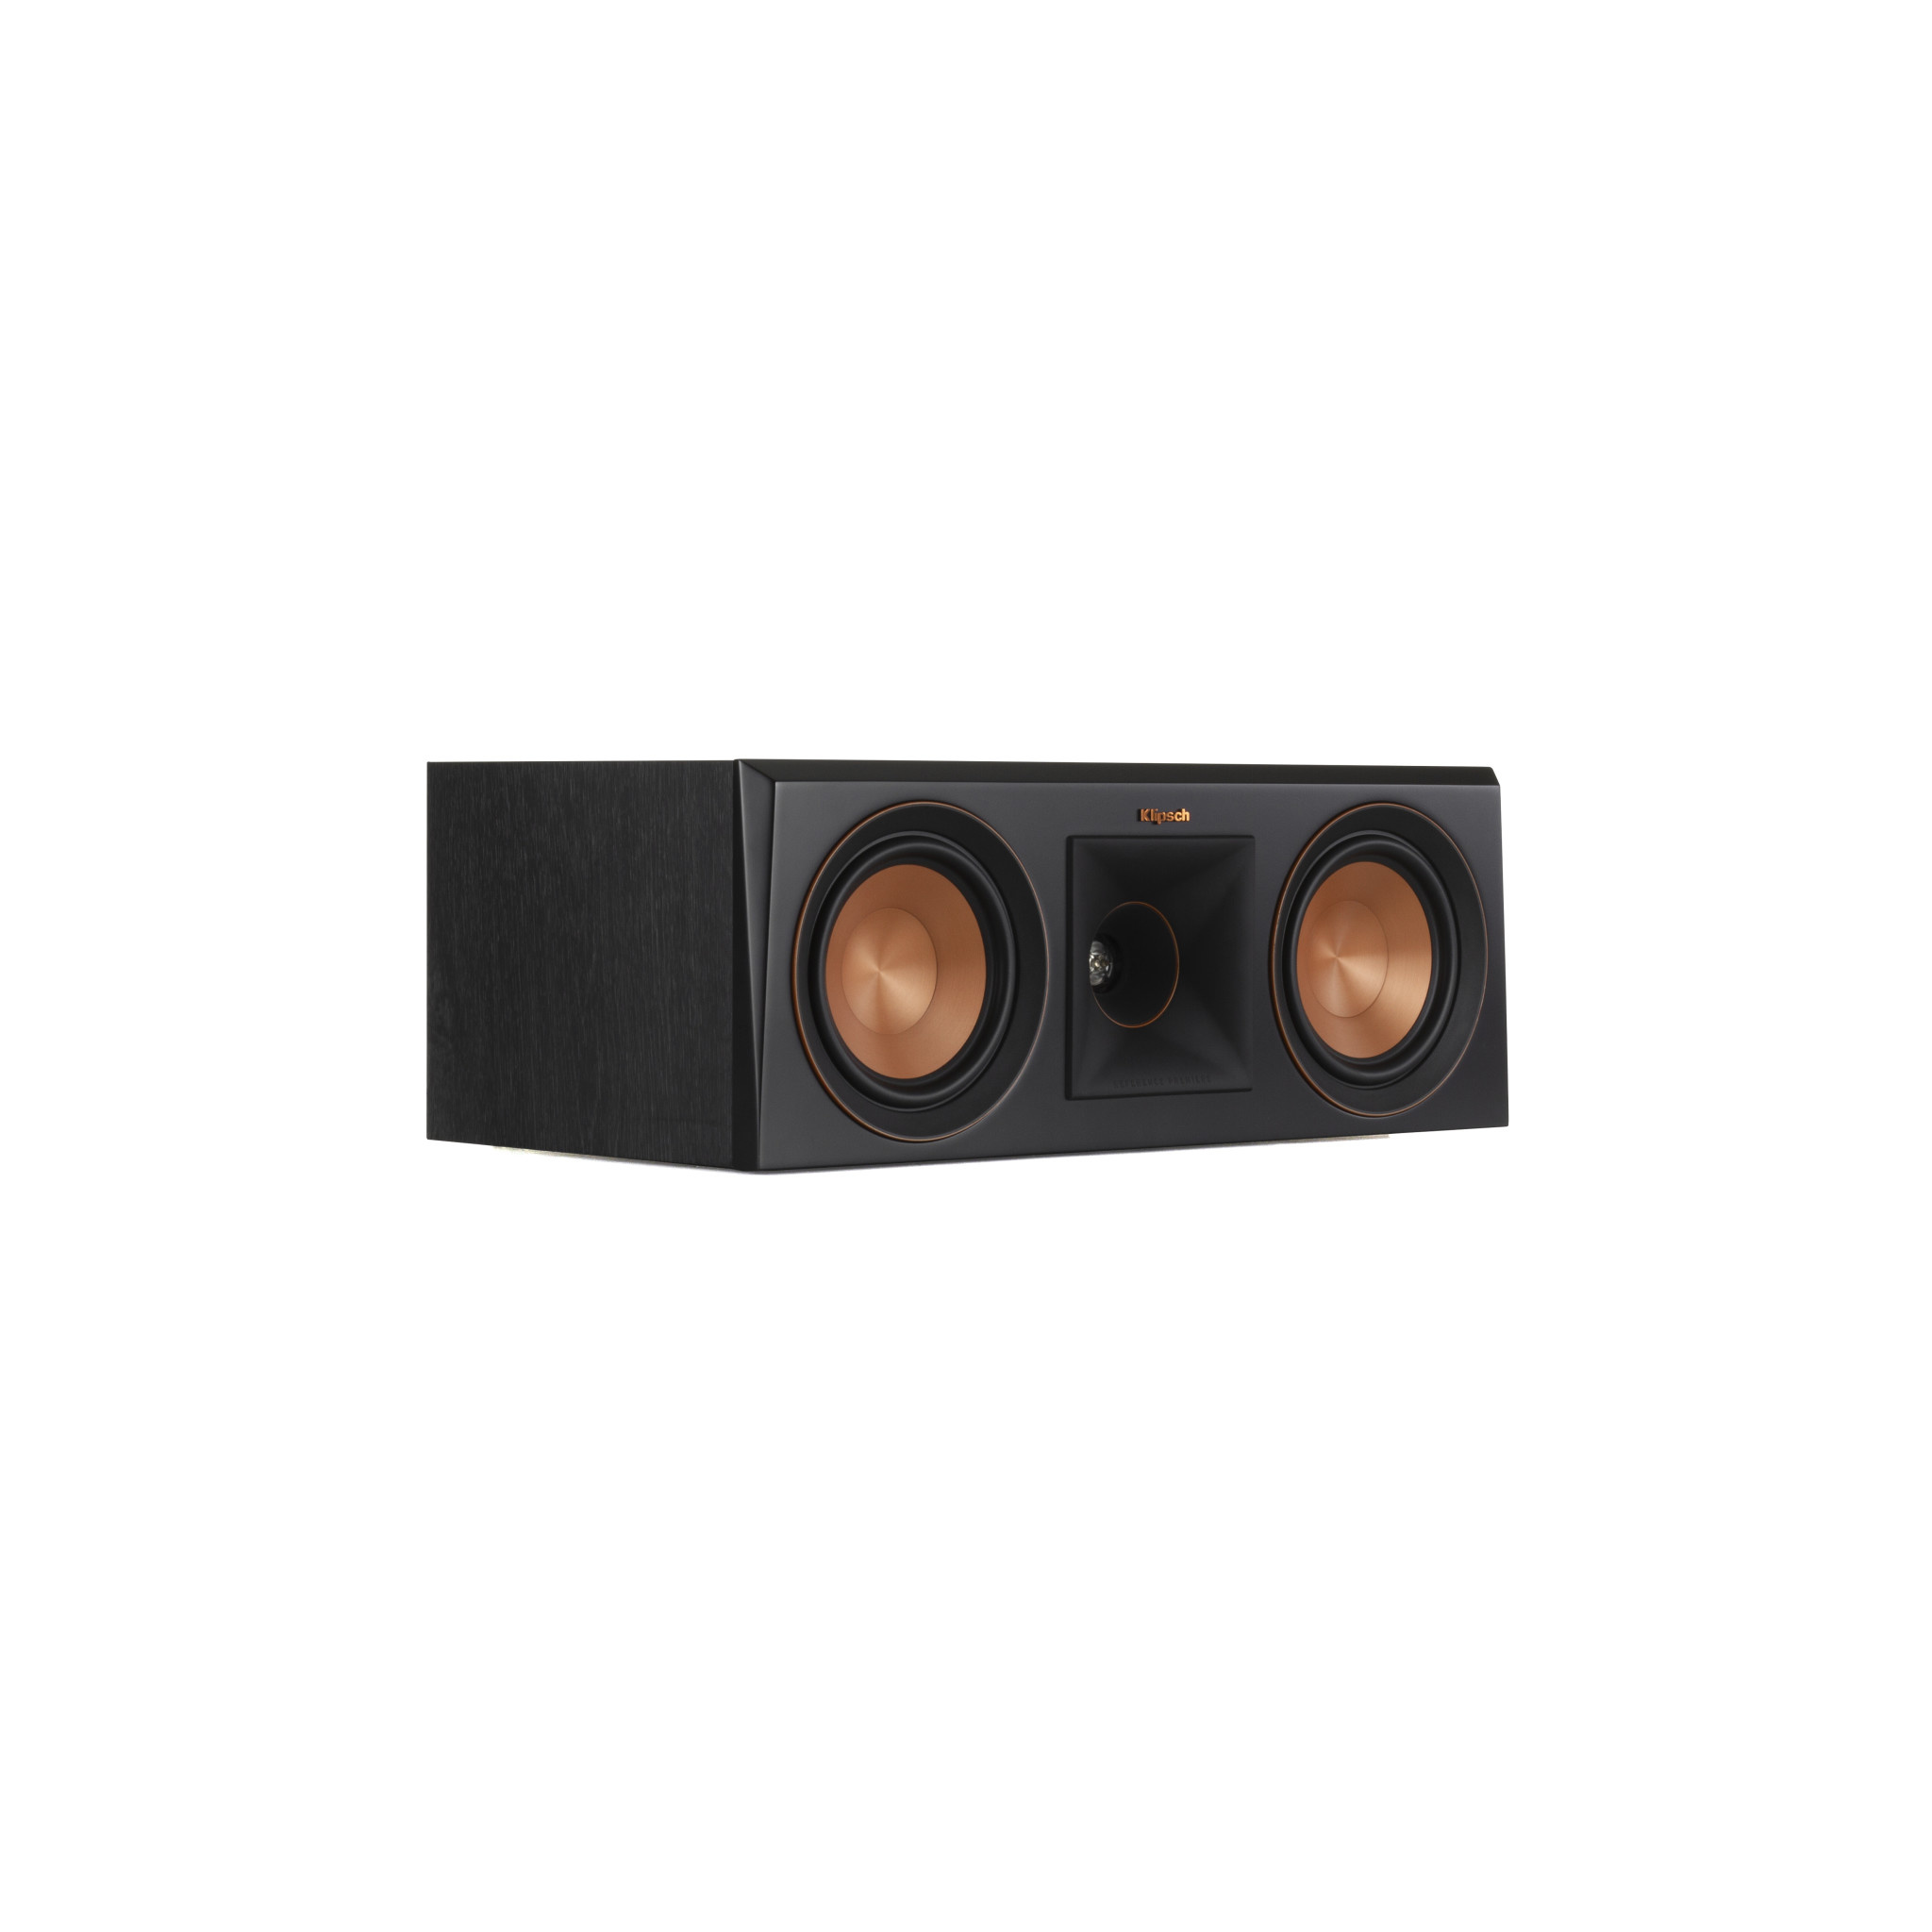 Klipsch Klipsch RP-500C Center Channel Speaker (walnut)